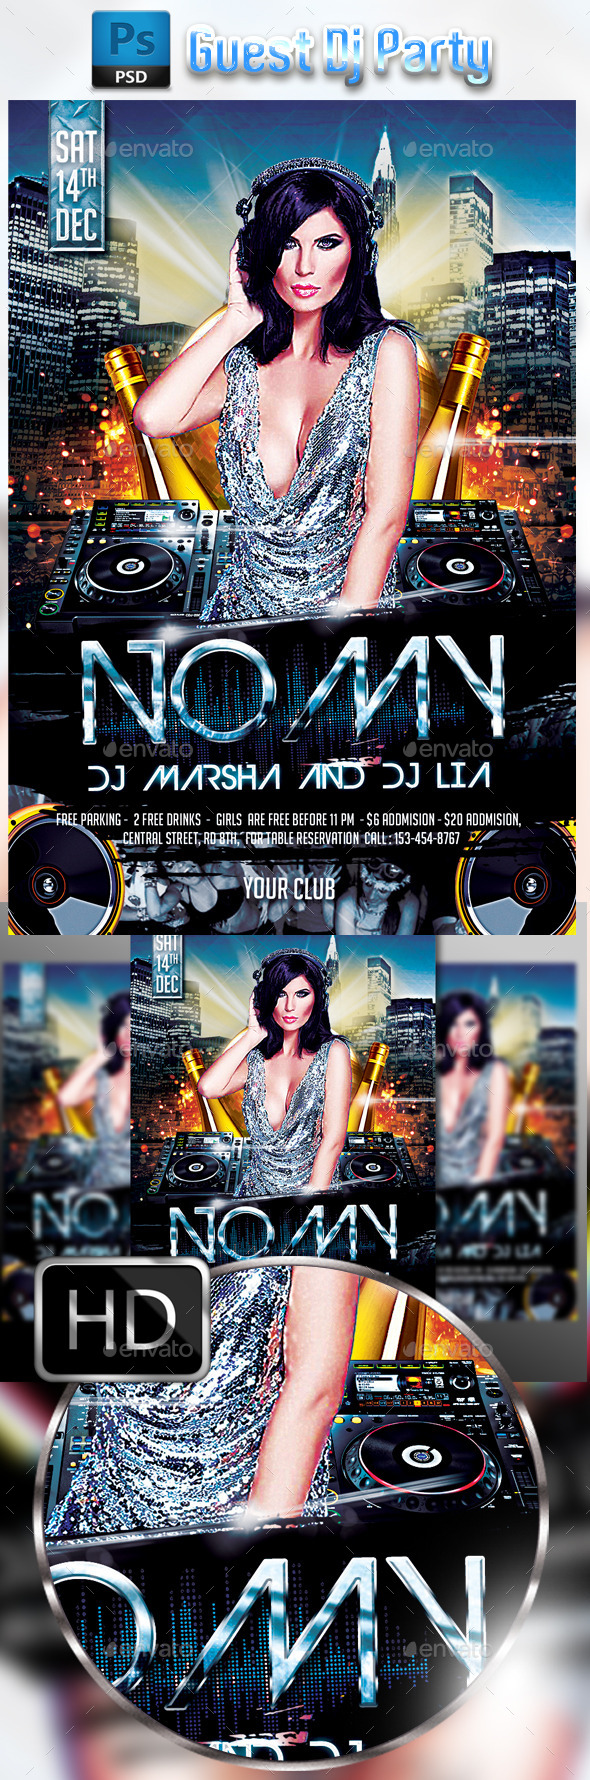 GraphicRiver Guest Dj Party #2 9171476